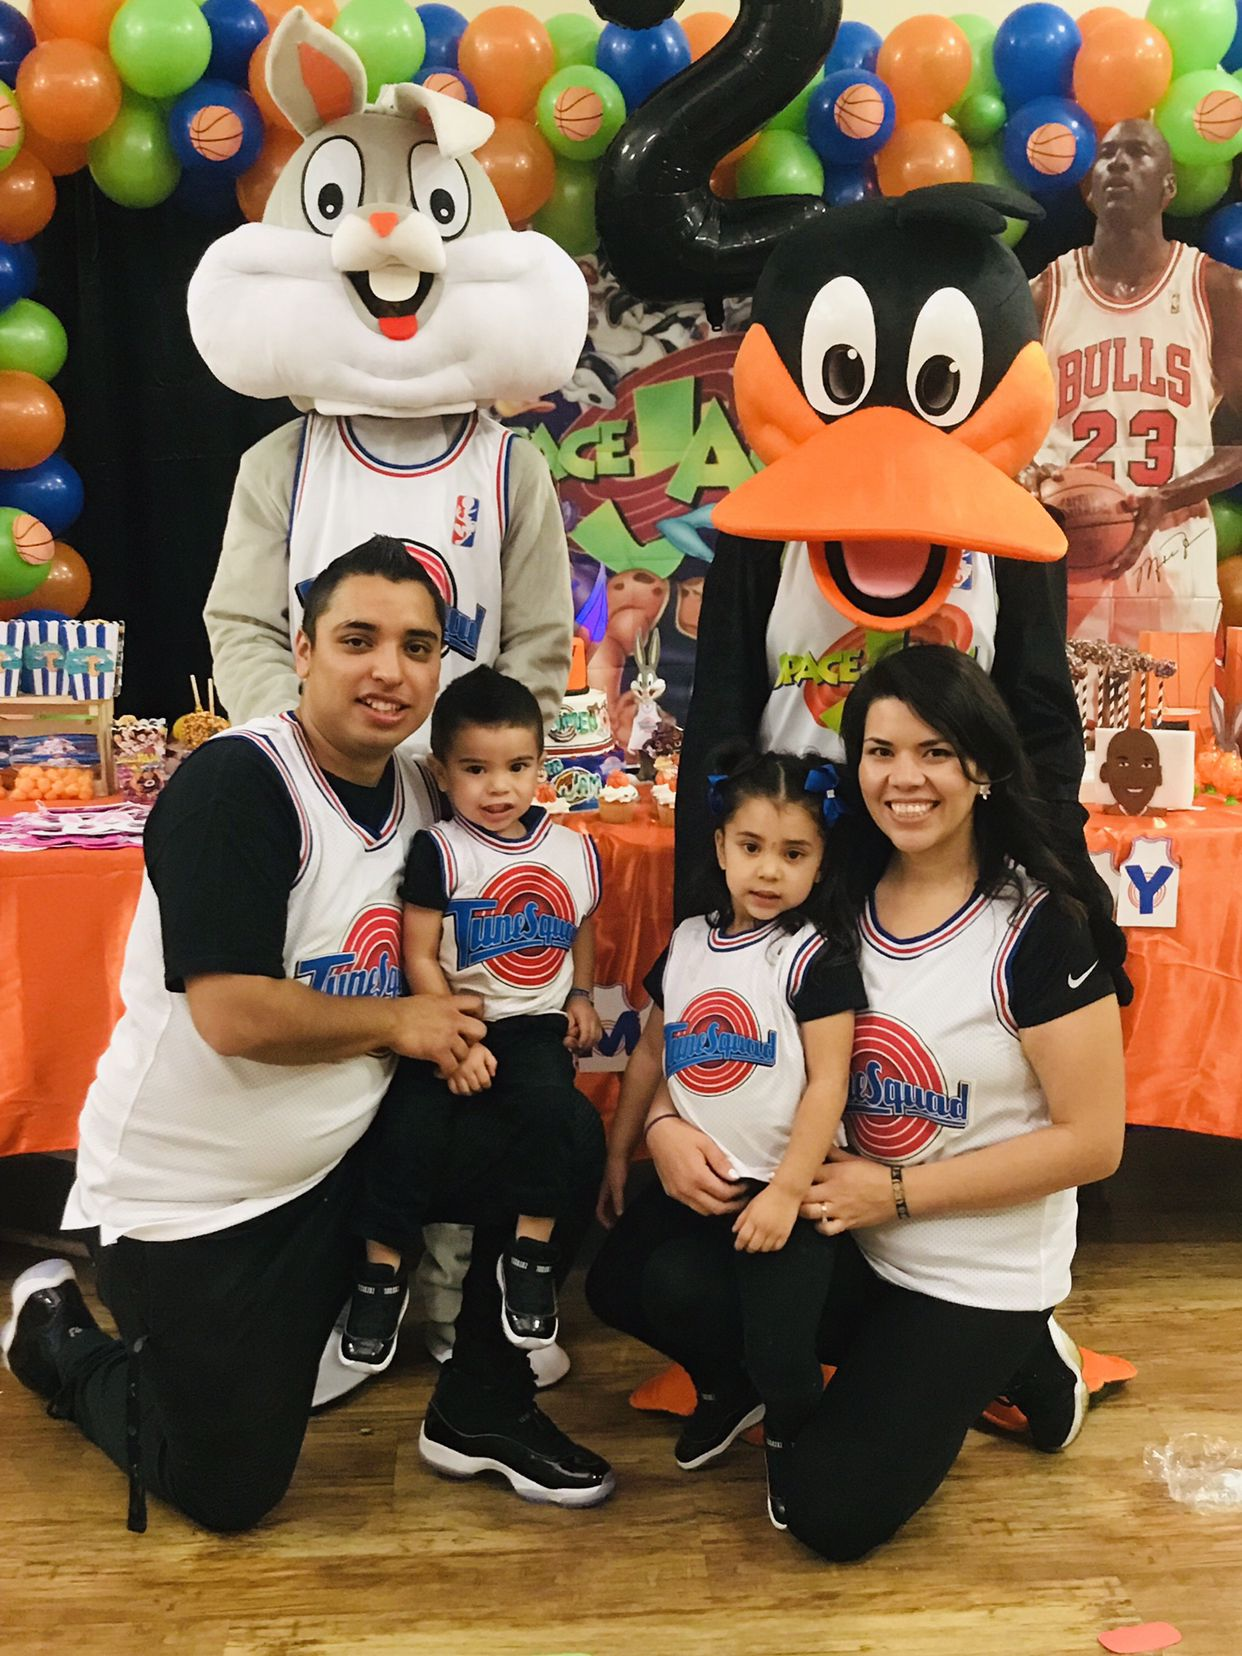 Romeo's 2nd jam   Space jam theme, Looney tunes party, 1st birthday party  themes